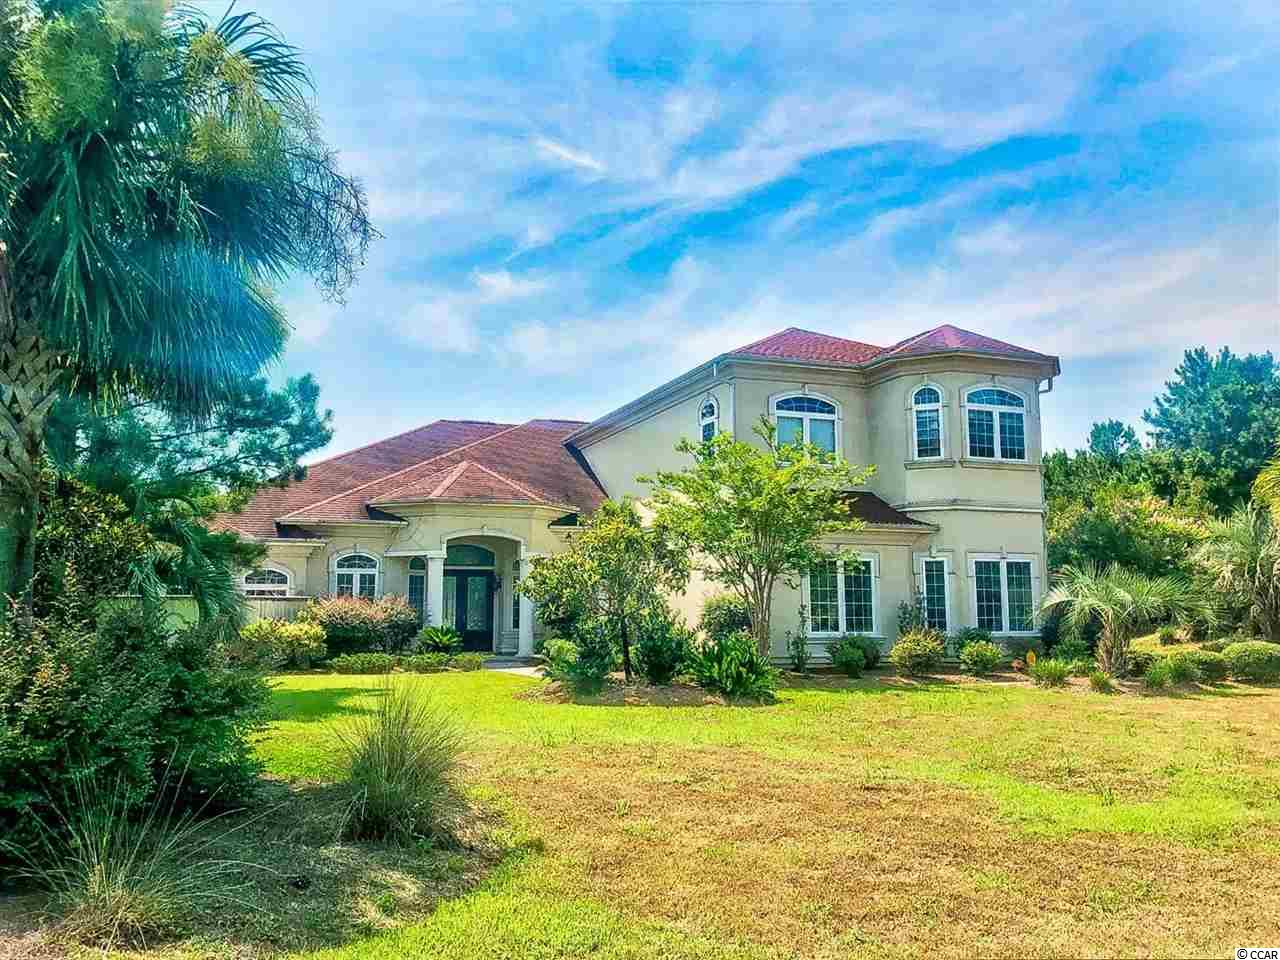 This gorgeous 4 bedroom, 4.5 bath custom home is located in the prestigious community of Plantation Lakes. The home boasts 12' tray ceilings as well as beautiful tile and hardwood floors that run throughout the entire main floor. The kitchen is equipped with all stainless steel appliances, a gas stovetop, a wine fridge, high-end cabinetry with a unique backsplash, granite counters, and a bright breakfast nook. The master is located not eh 1st floor and features a huge walk in closet and master bath with double sink vanities, whirlpool tub, and luxurious tiled walk in shower, while the remaining 3 bedrooms are upstairs. A loft upstairs would make the perfect play room, bonus room; the options are endless. Other features of the home are a formal dining room, an entry closet, oversized crown molding, a screened in porch with built in BBQ, and a fenced-in pool area with a hot tub and a view of the lake. A two car garage along with plenty of storage closets throughout adds ease and convenience. Plantation Lakes amenities include three pools, boat dock, tennis and basketball courts, owner's clubhouse, playground, and sidewalks to enjoy an afternoon stroll. Close to many great restaurants, stores, shopping, and approximately 10 minutes to the best beaches along the Golden Mile of Myrtle Beach. Don't miss this opportunity...schedule your showing today!